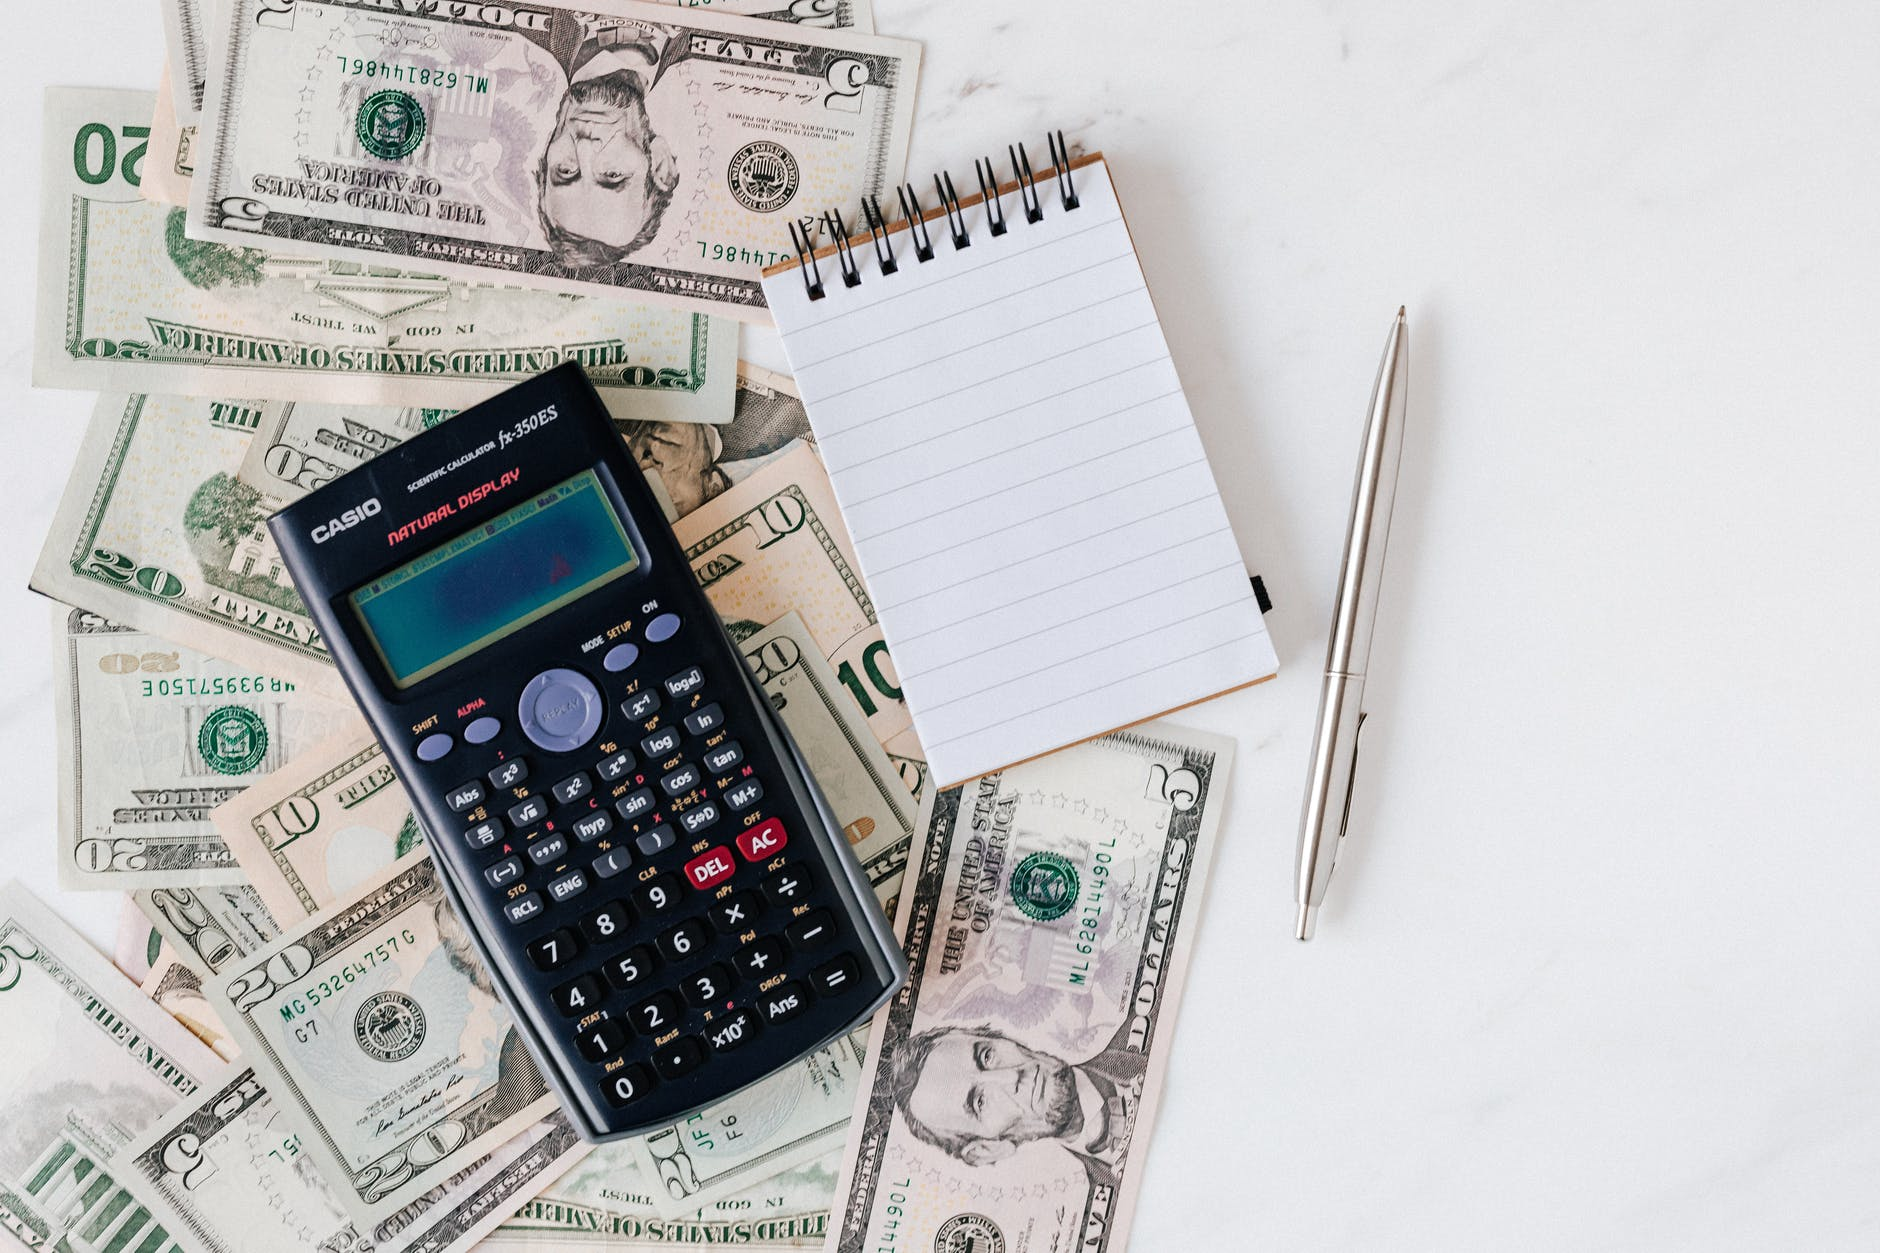 Calculator, currency, and note pad.